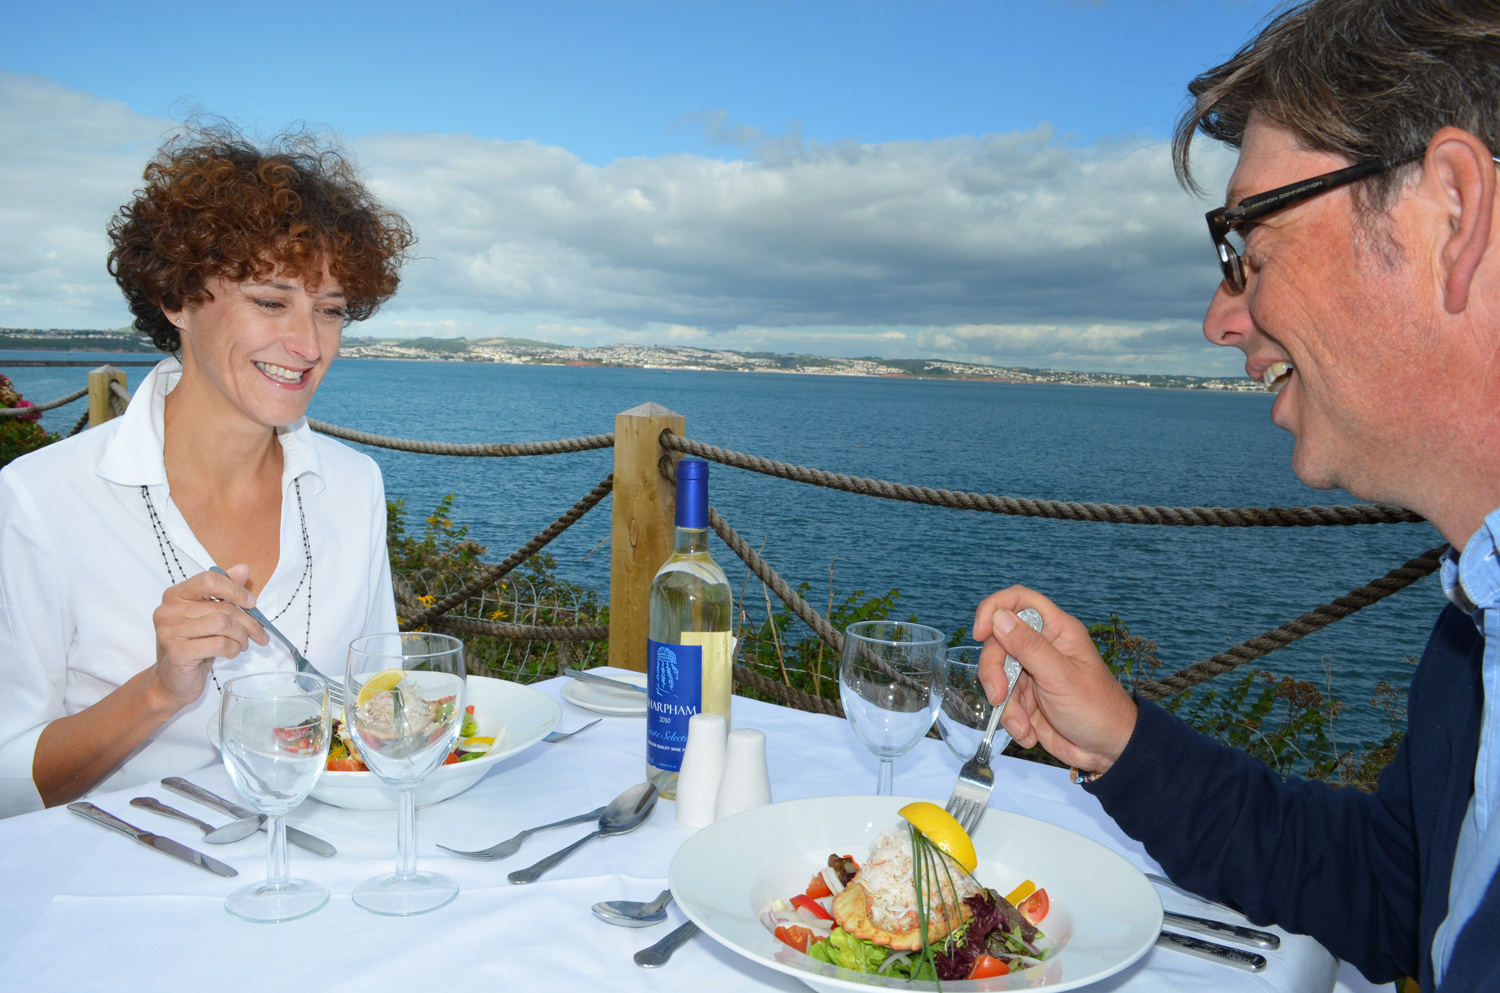 A couple having a romantic lunch with a view over the Devon coastline near Torquay.